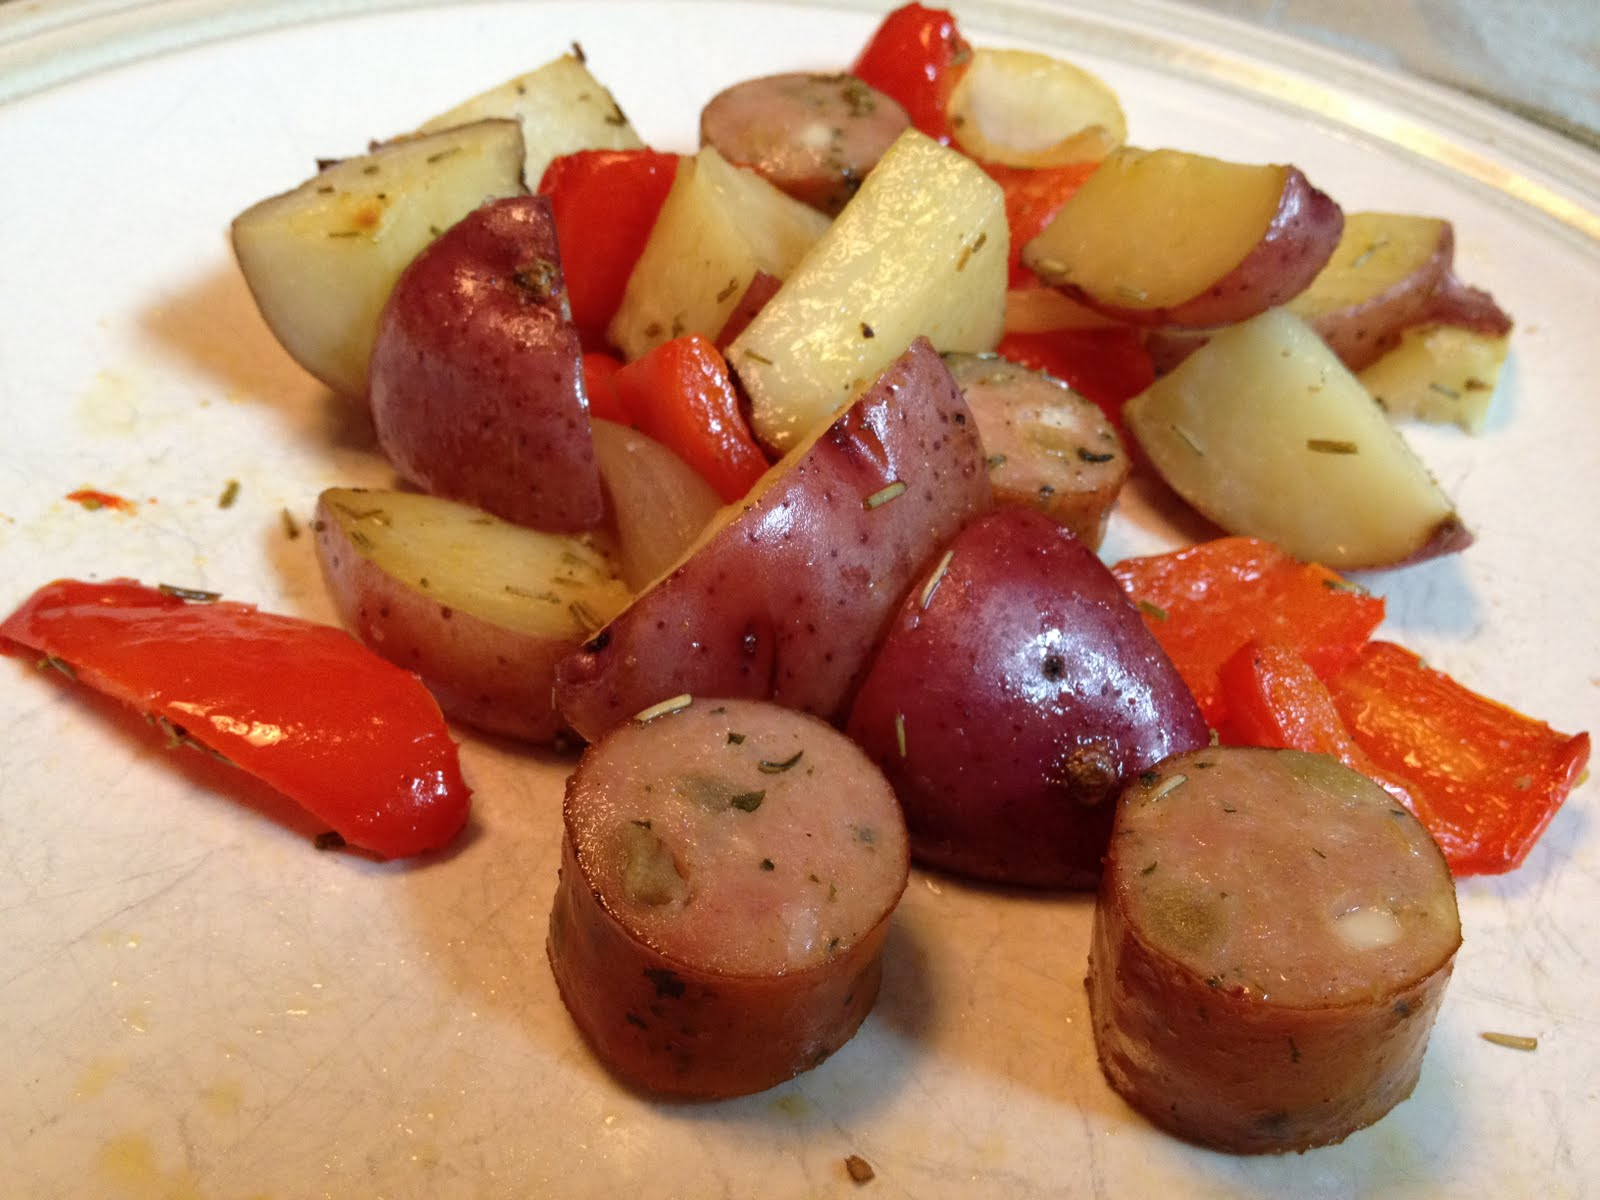 Steal Great Recipes: Roasted Potatoes, Chicken Sausage, and Peppers